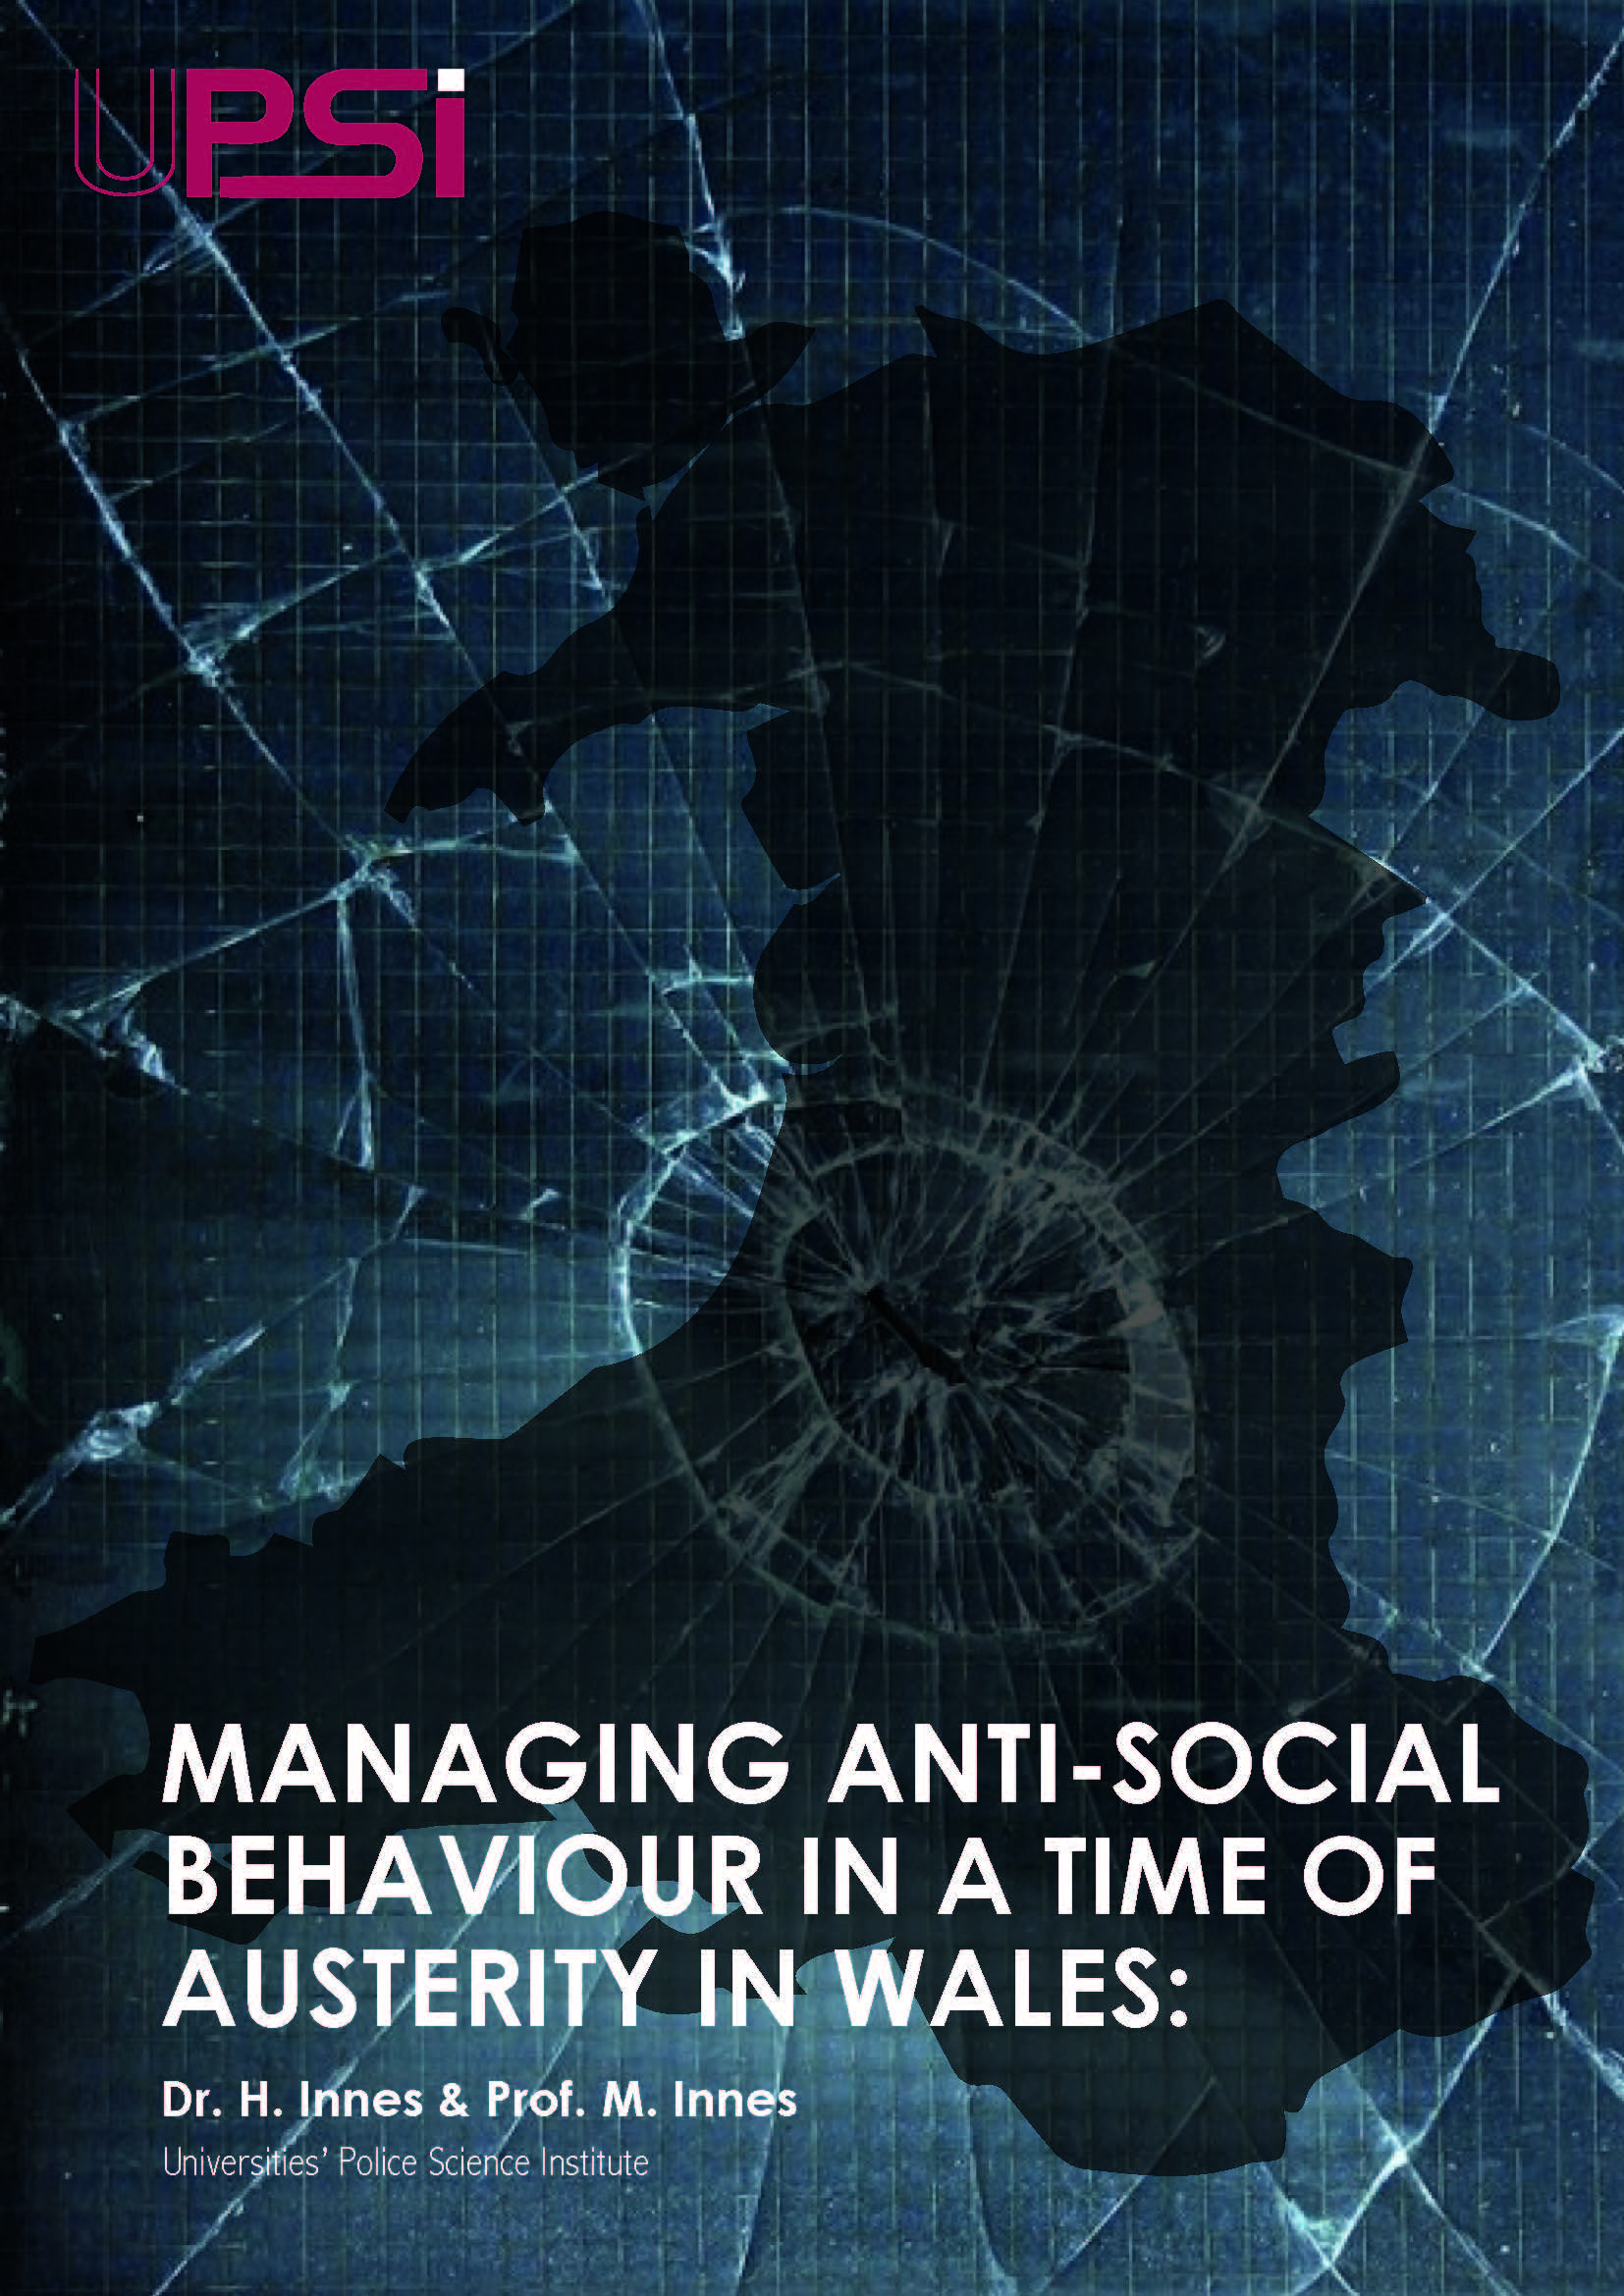 Managing Anti-social Behaviour in a Time of Austerity in Wales